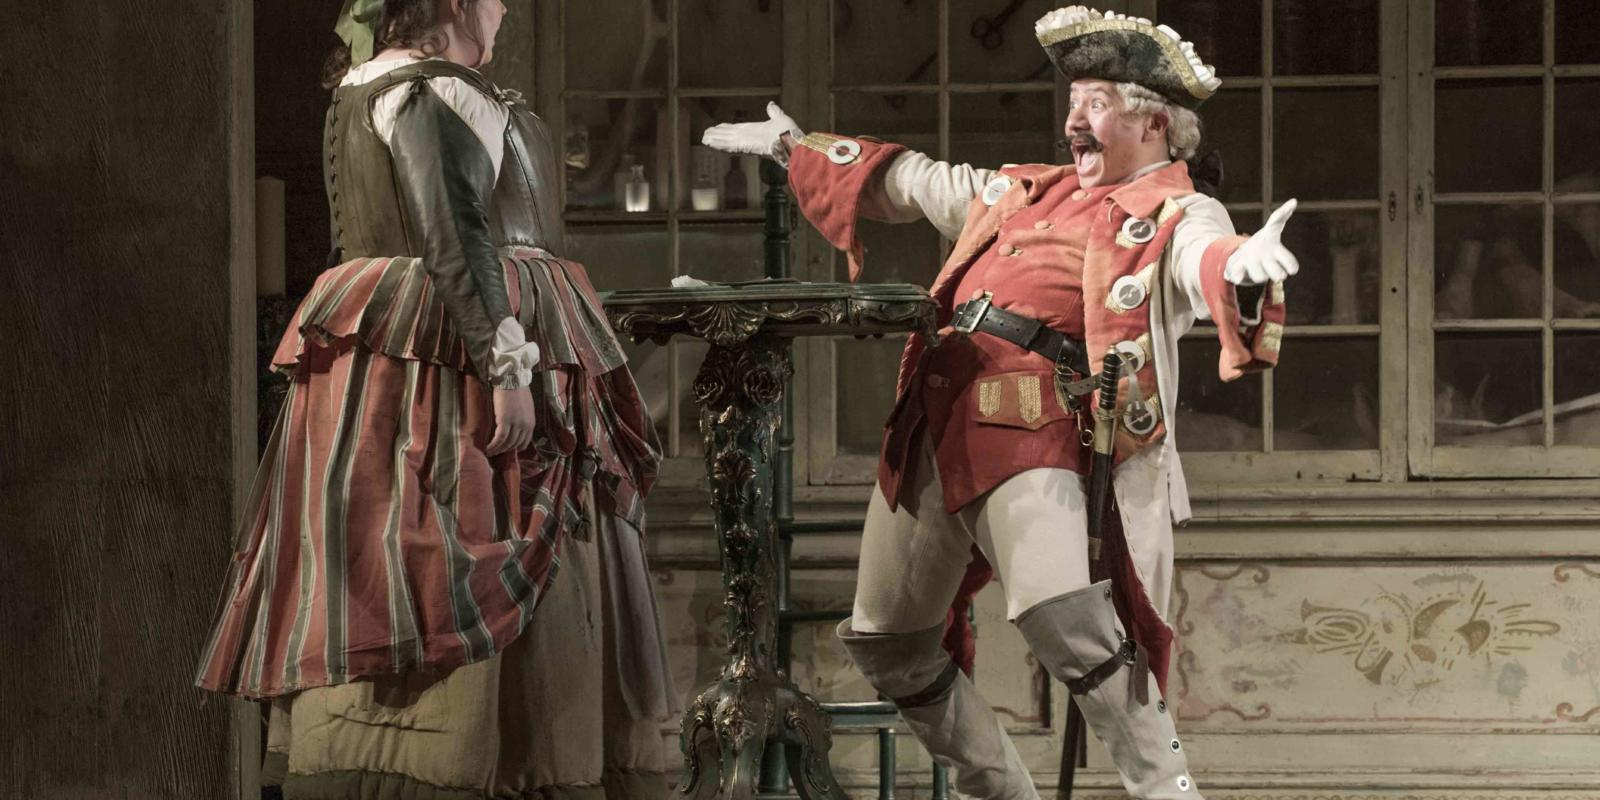 An image of Katherine Broderick and Eleazar Rodriguez in Jonathan Miller's 2015 production of Barber of Seville